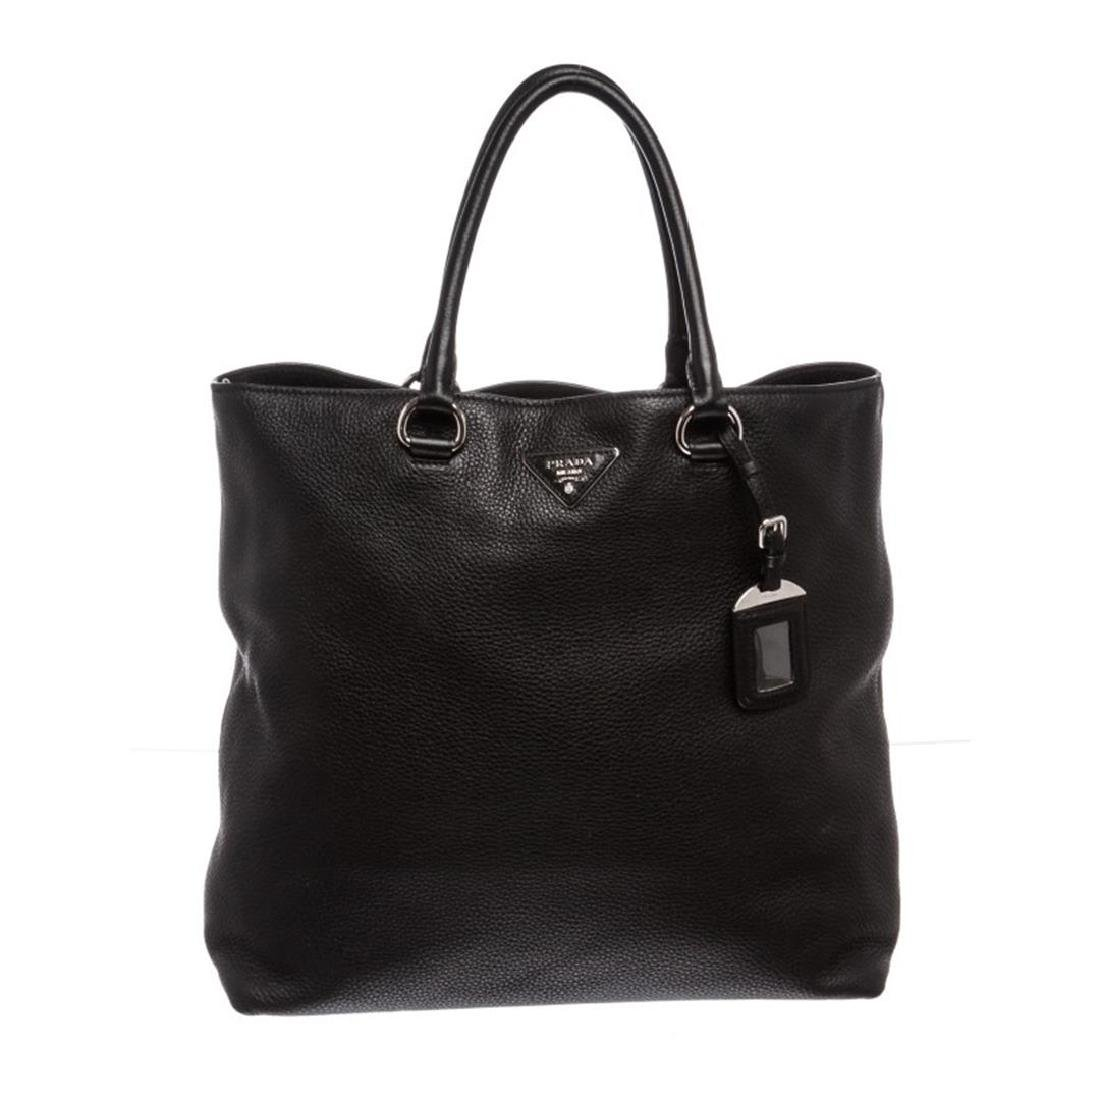 Prada Nero Black Leather Vitello Daino North-South Tote